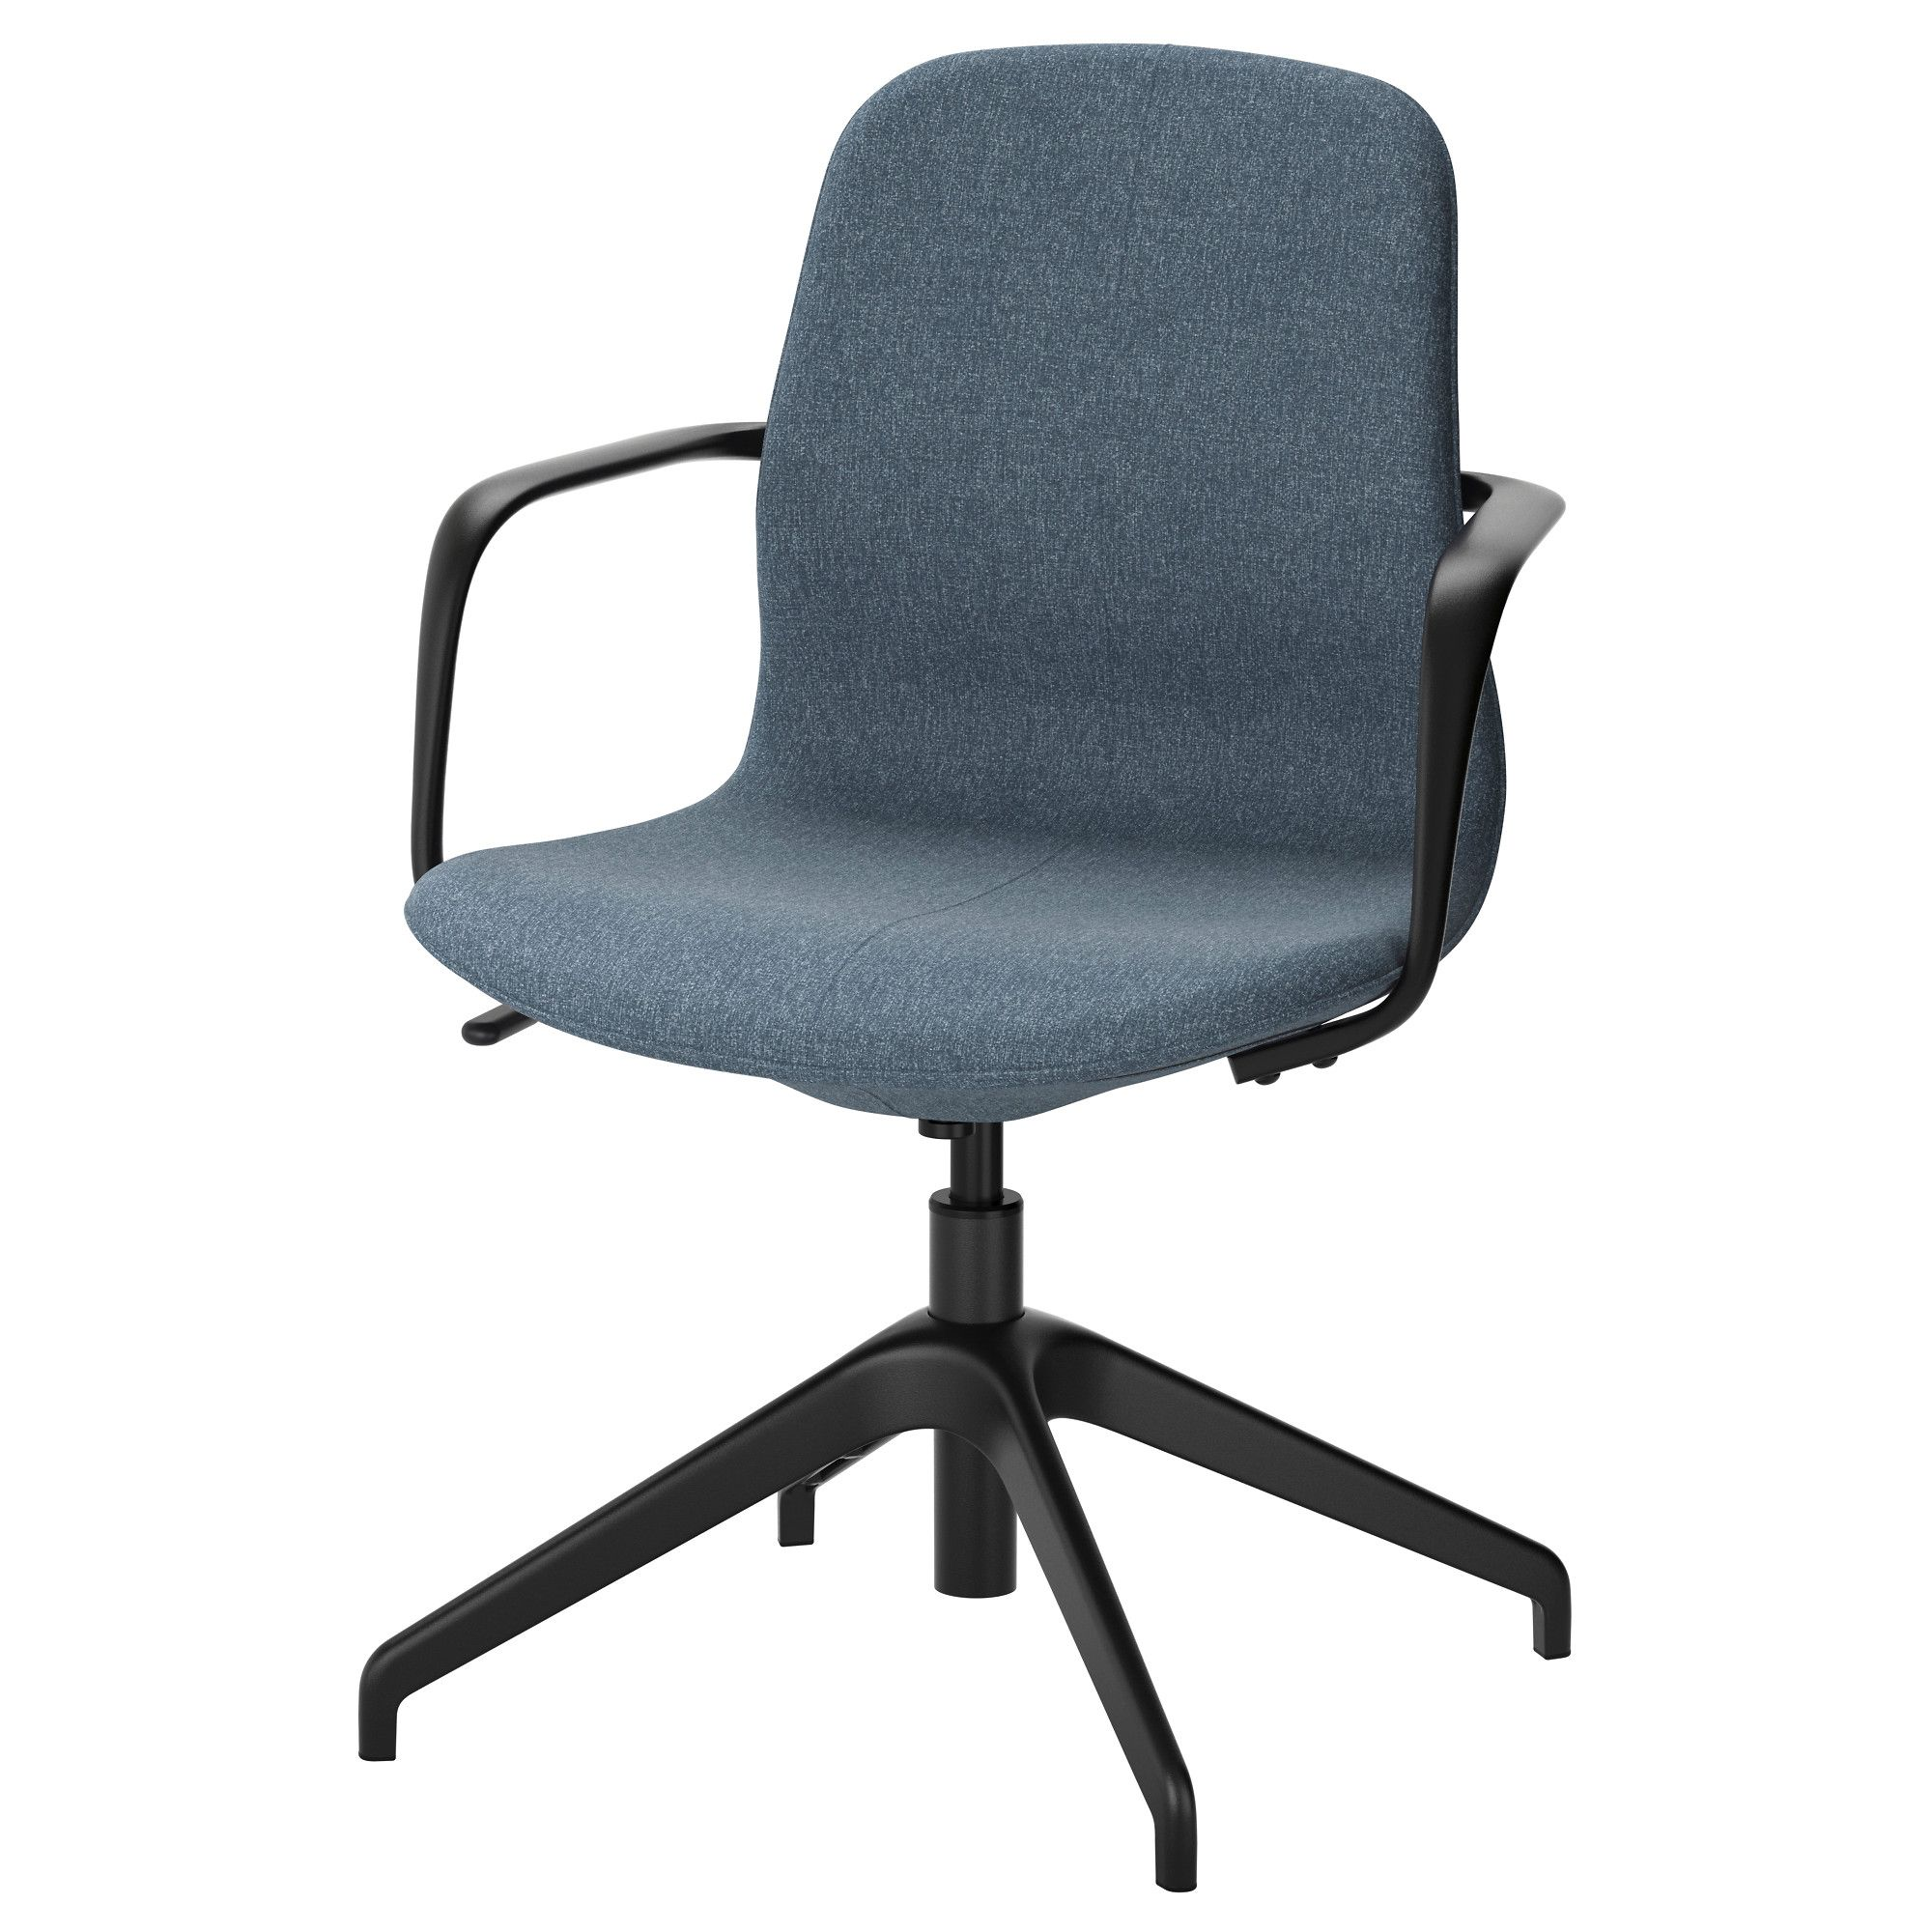 Farben des wohnraums 2018 lÅngfjÄll swivel chair gunnared blue black in   praxis